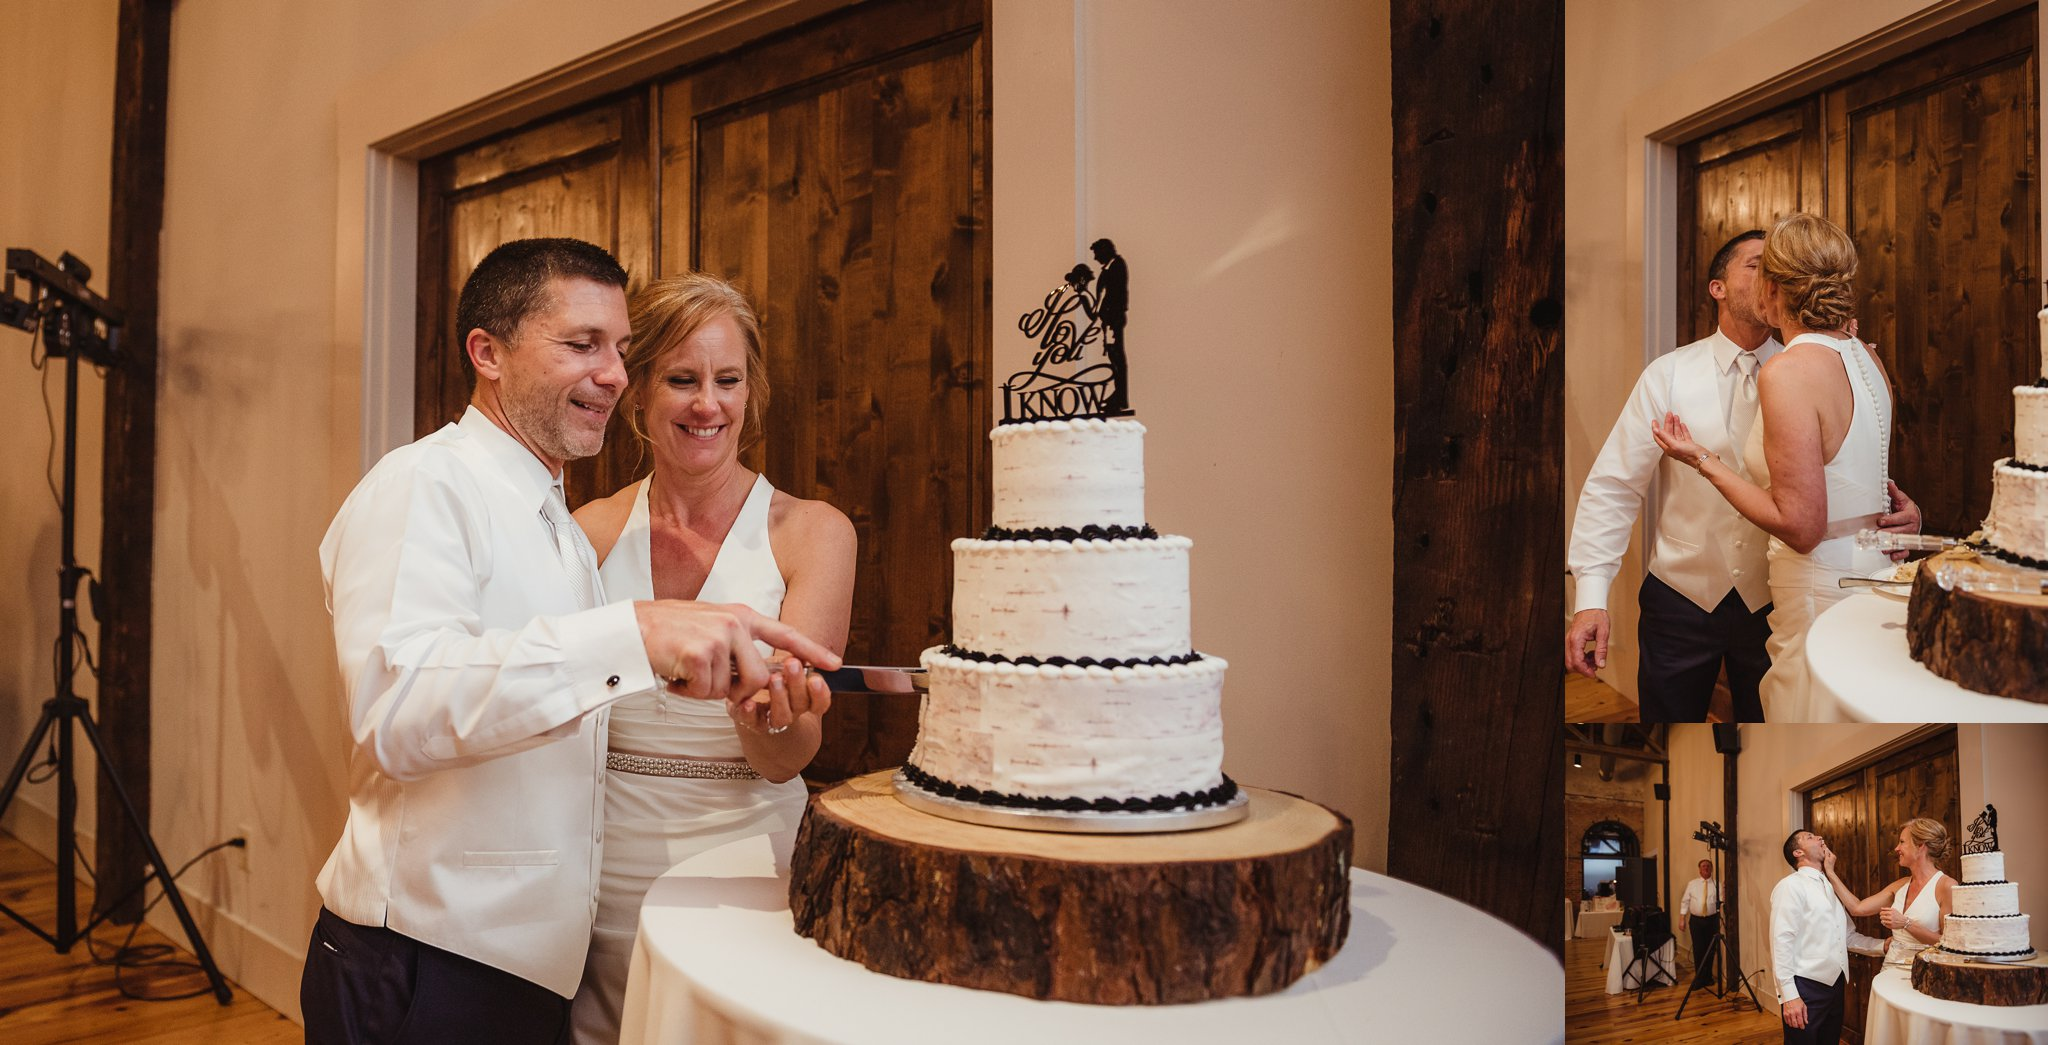 The bride and groom pose for Rose Trail Images while cutting their wedding cake at their reception at Cross and Main in Youngsville, NC.